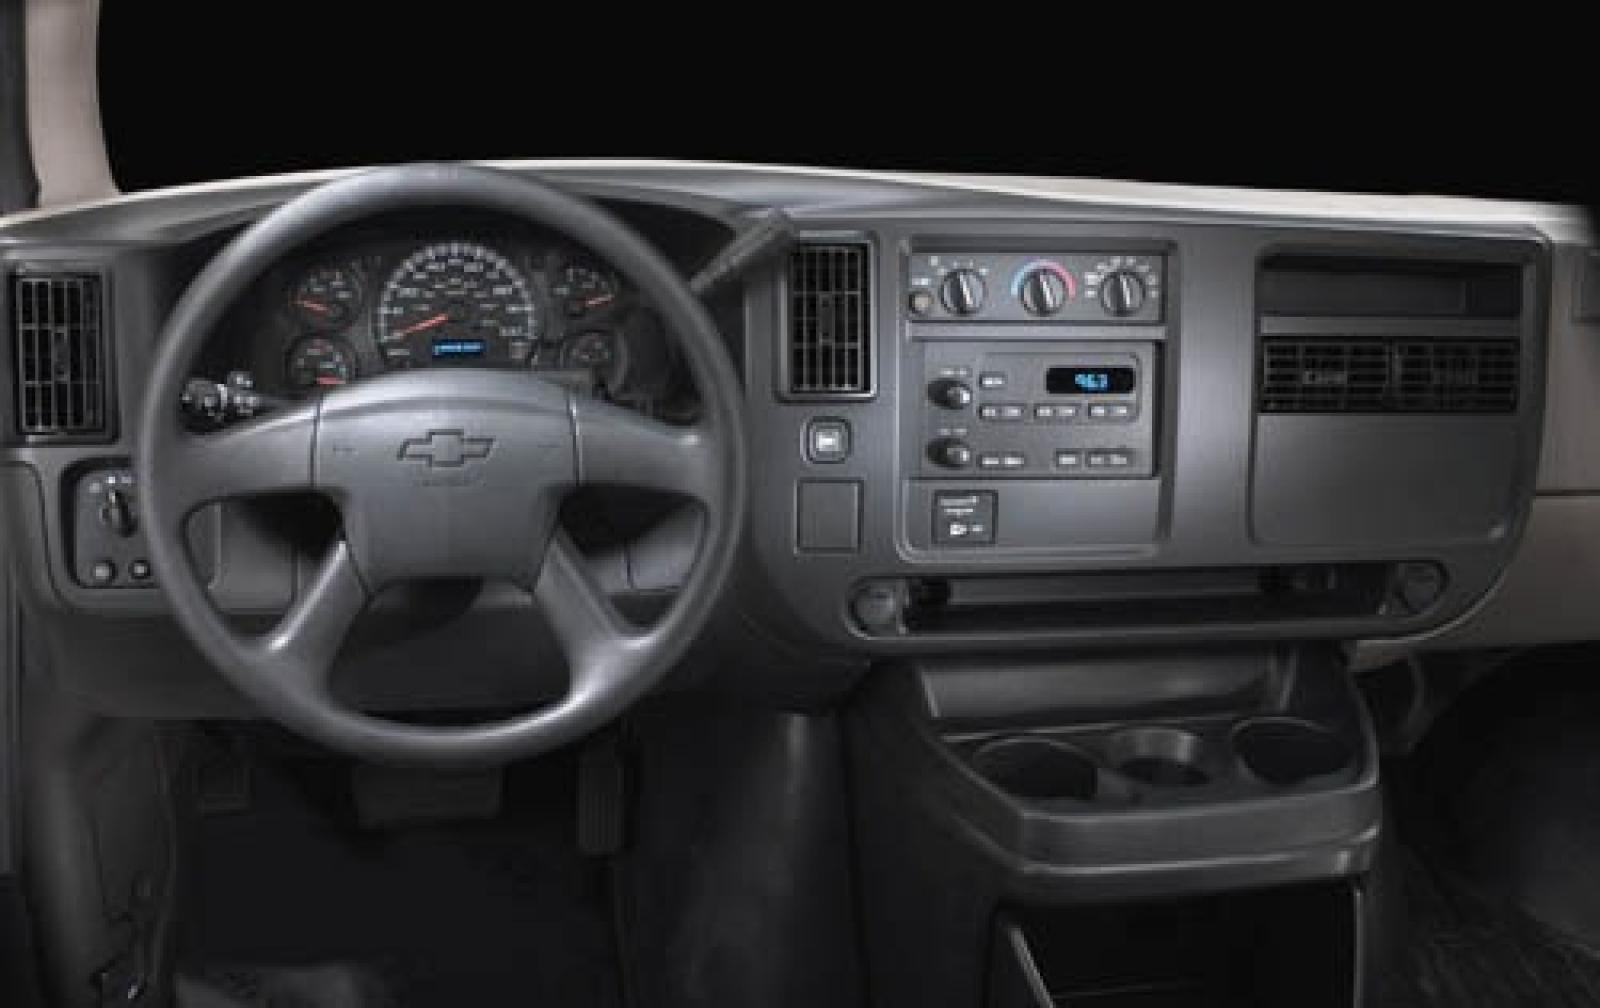 2005 chevrolet express information and photos zombiedrive